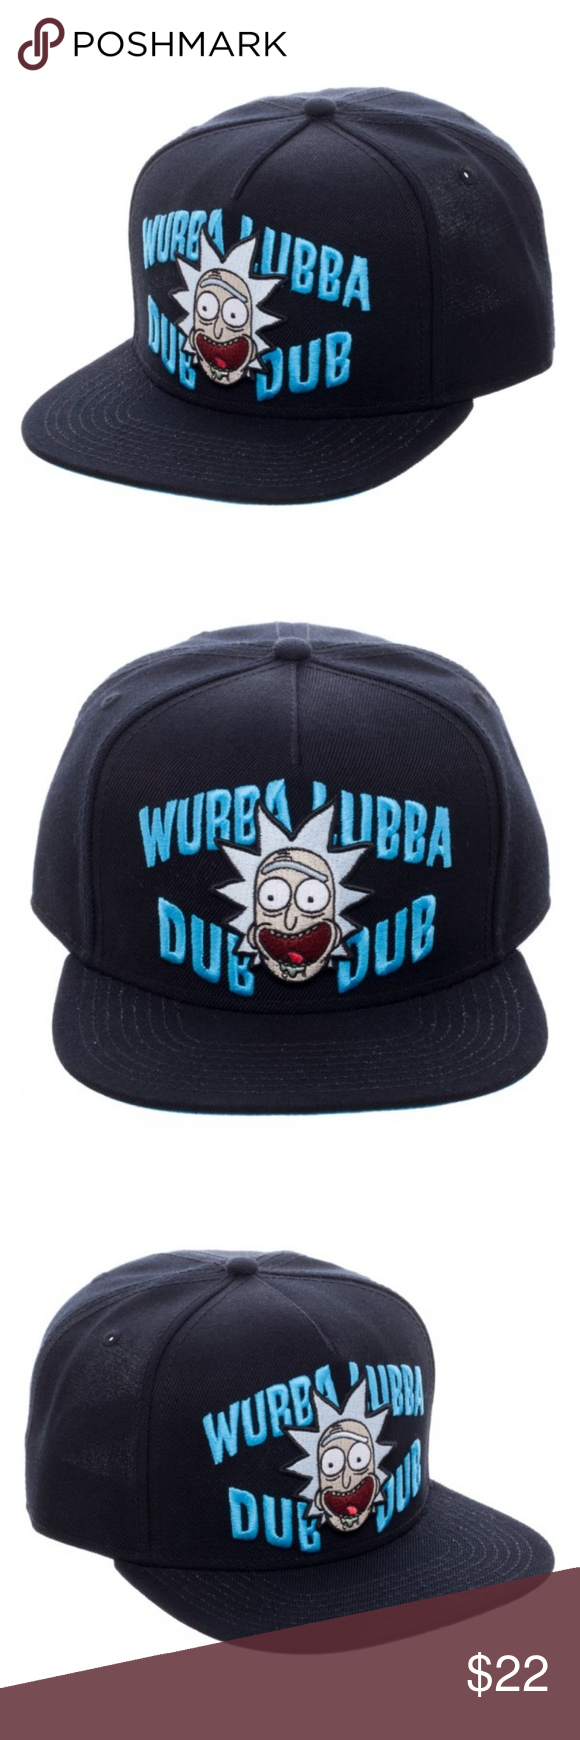 b2c59b8baa3 Rick And Morty Wubba Lubba Black Snapback Hat This hat is a dope addition  to any